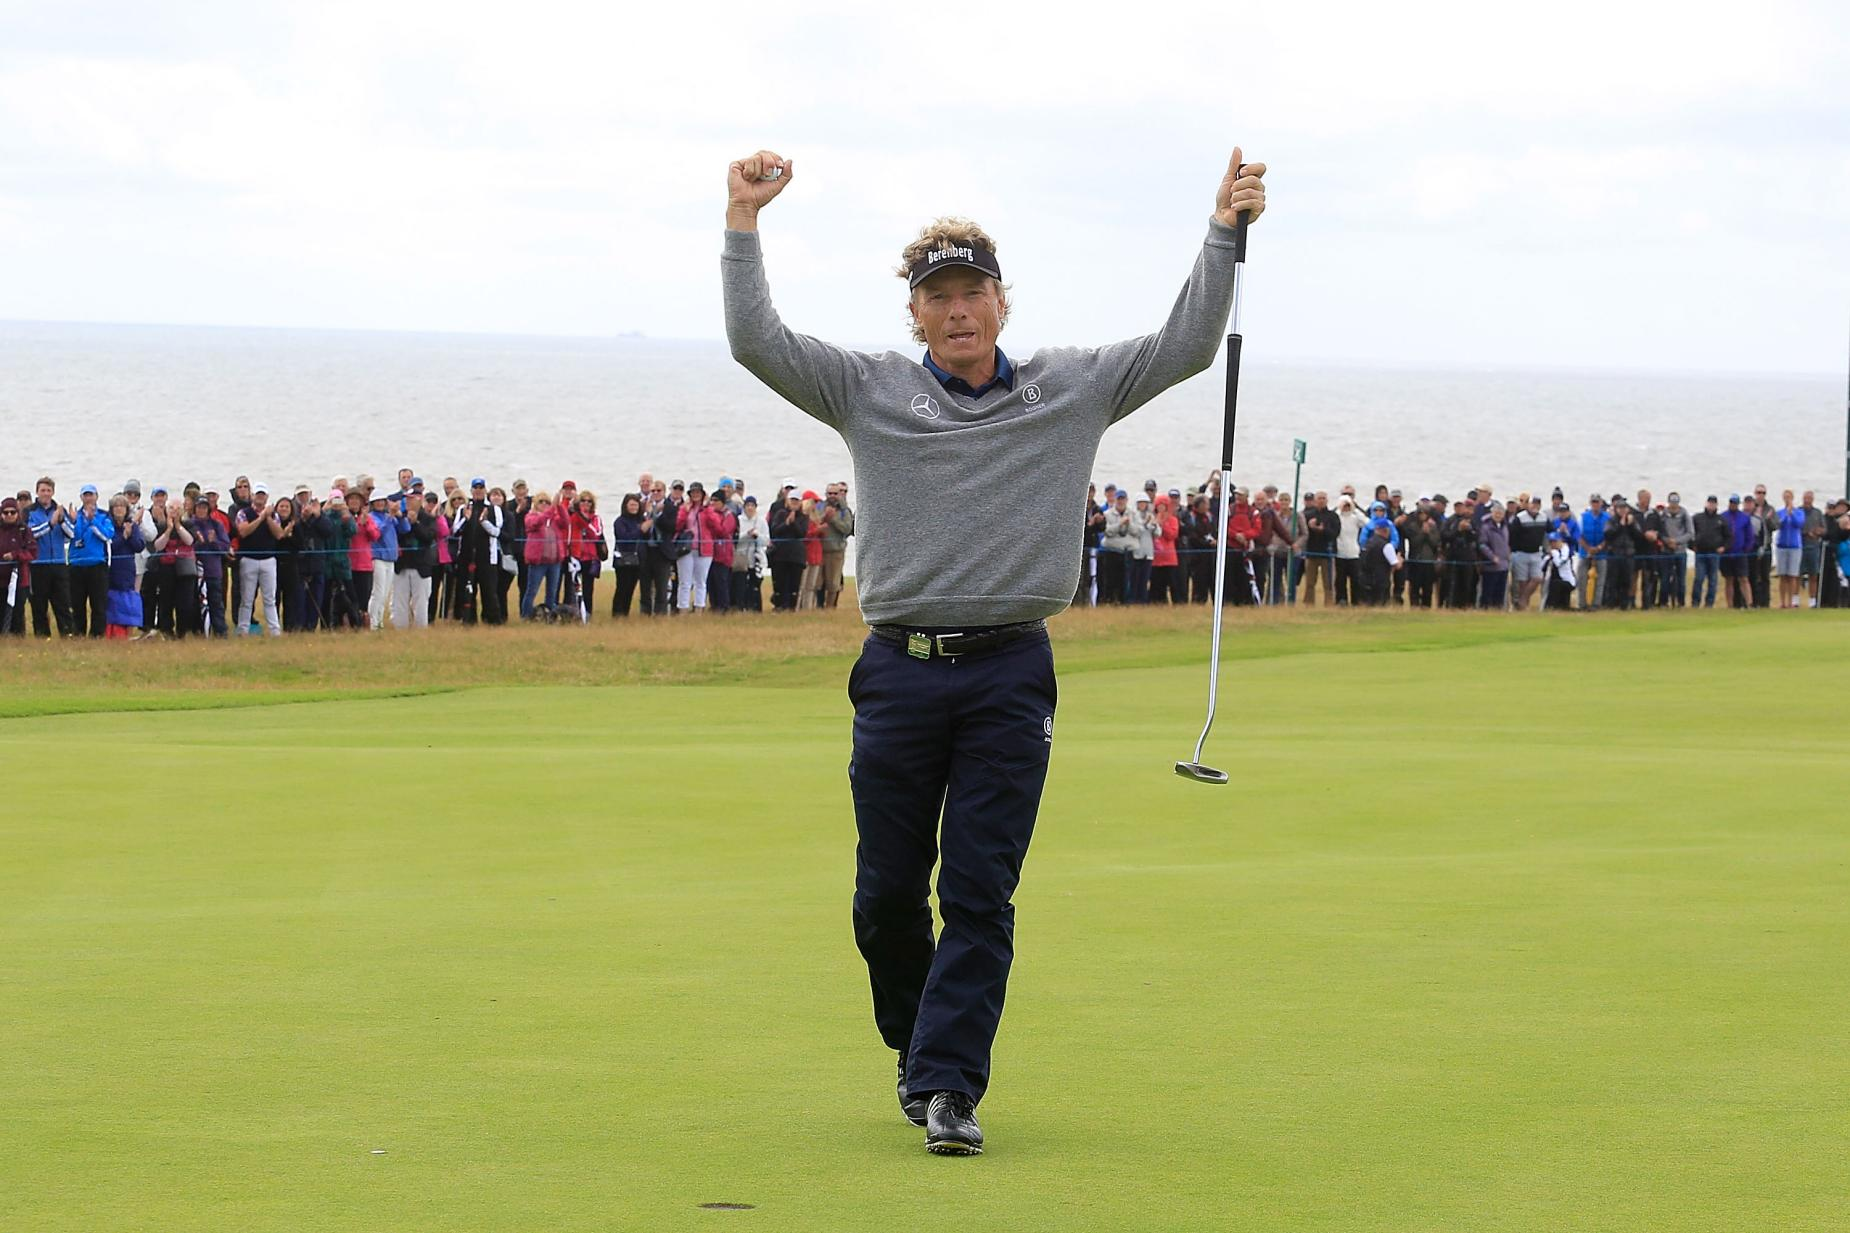 bernhard-langer-senior-british-open-2017-sunday-celebration.jpg